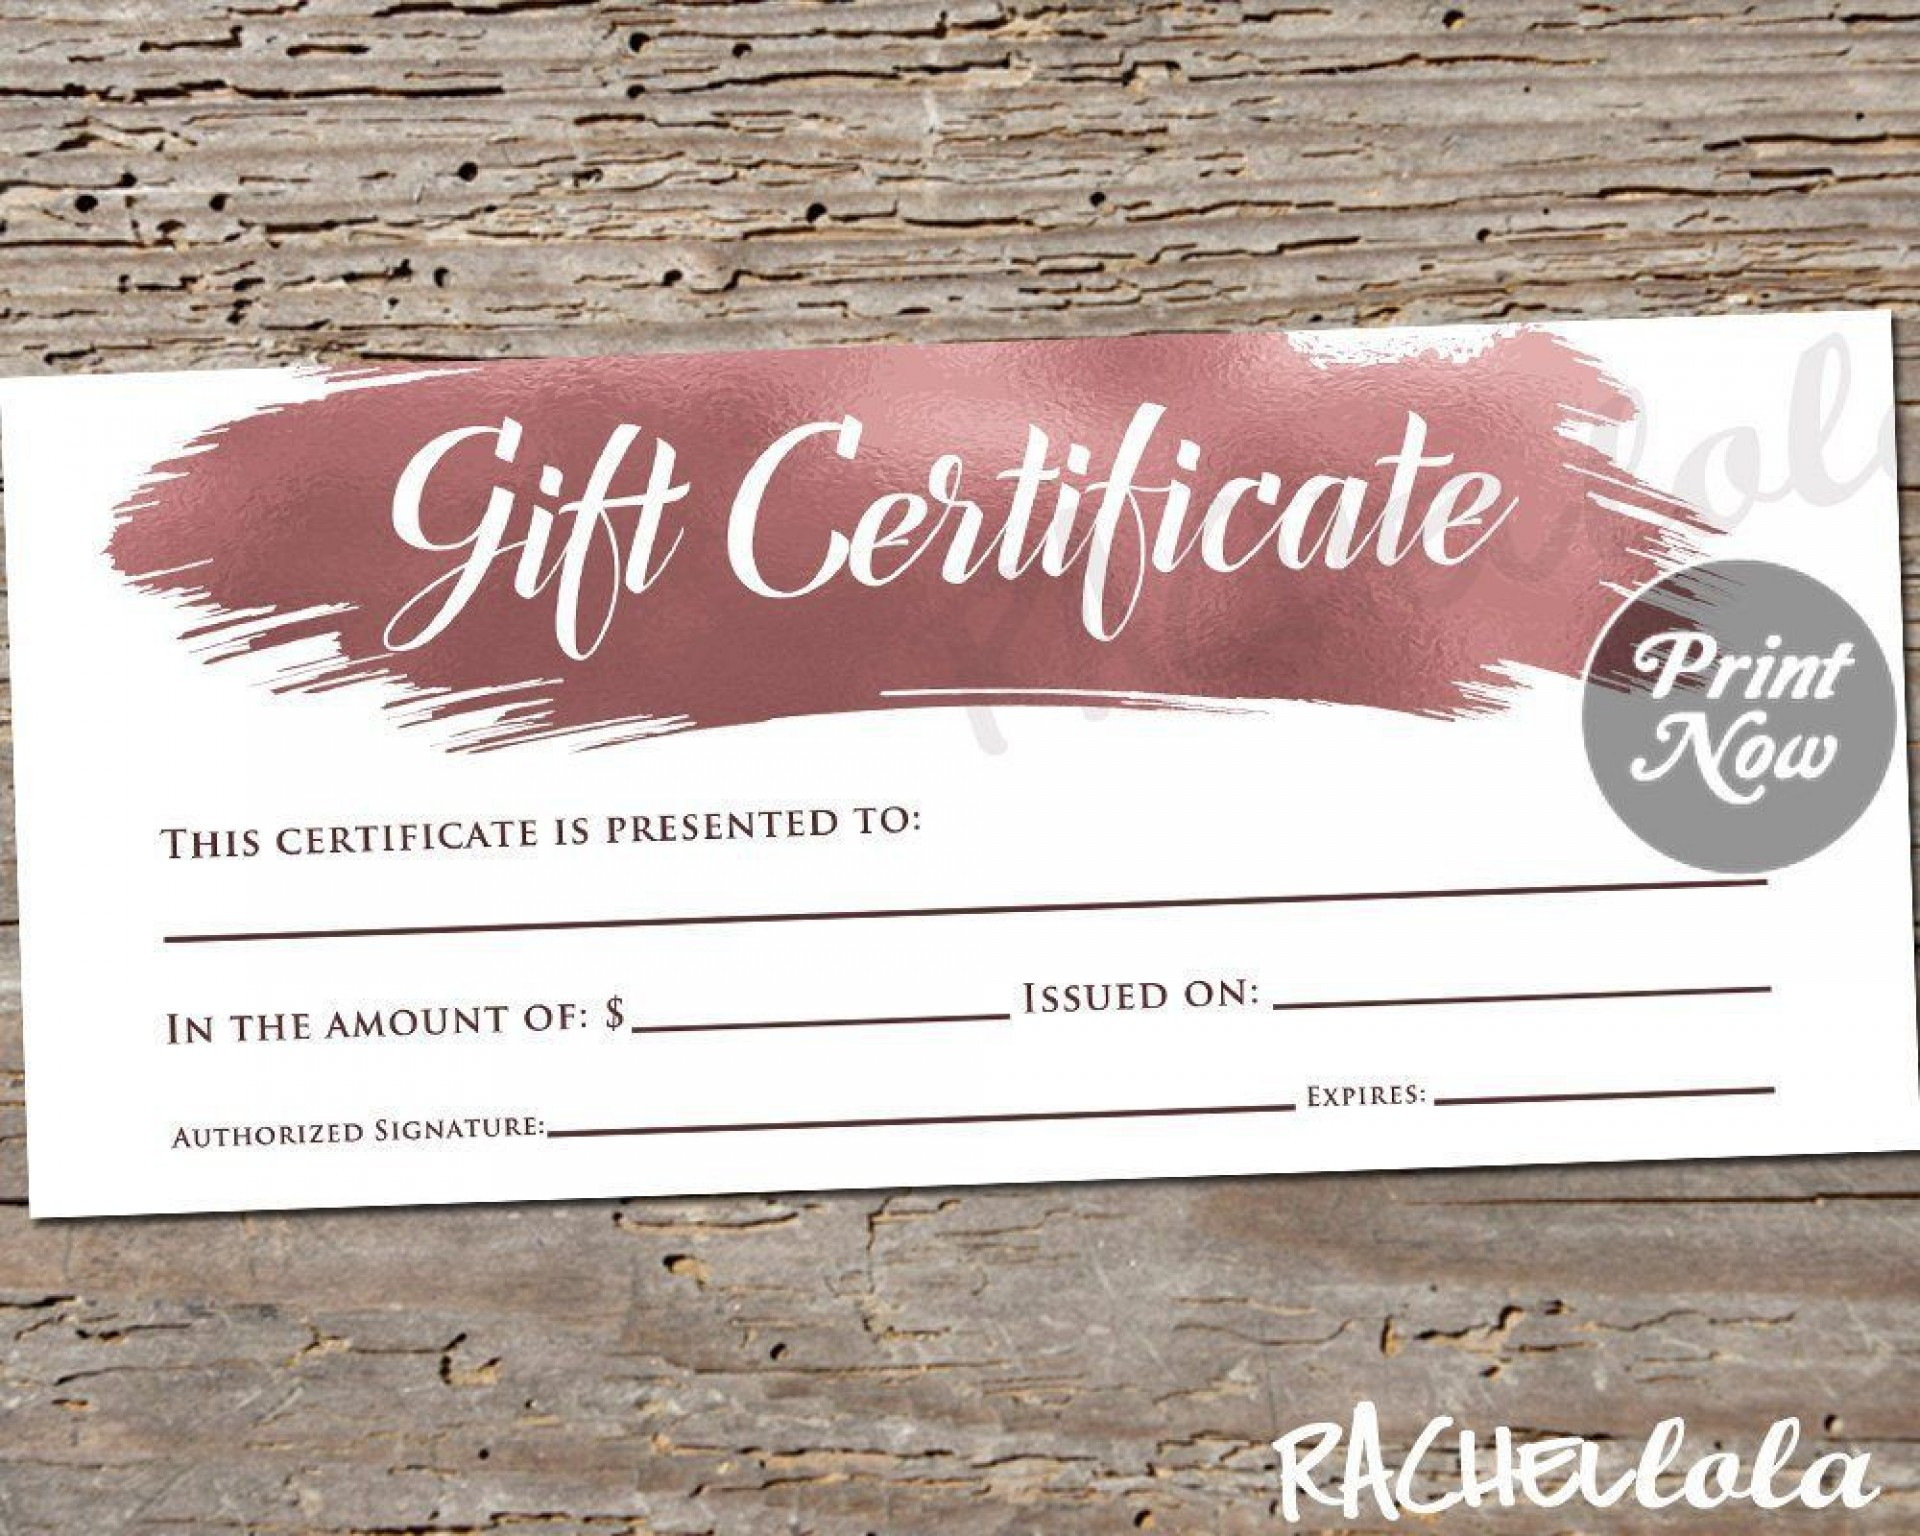 000 Unusual Template For Gift Certificate Picture  Voucher Word Free Printable In1920